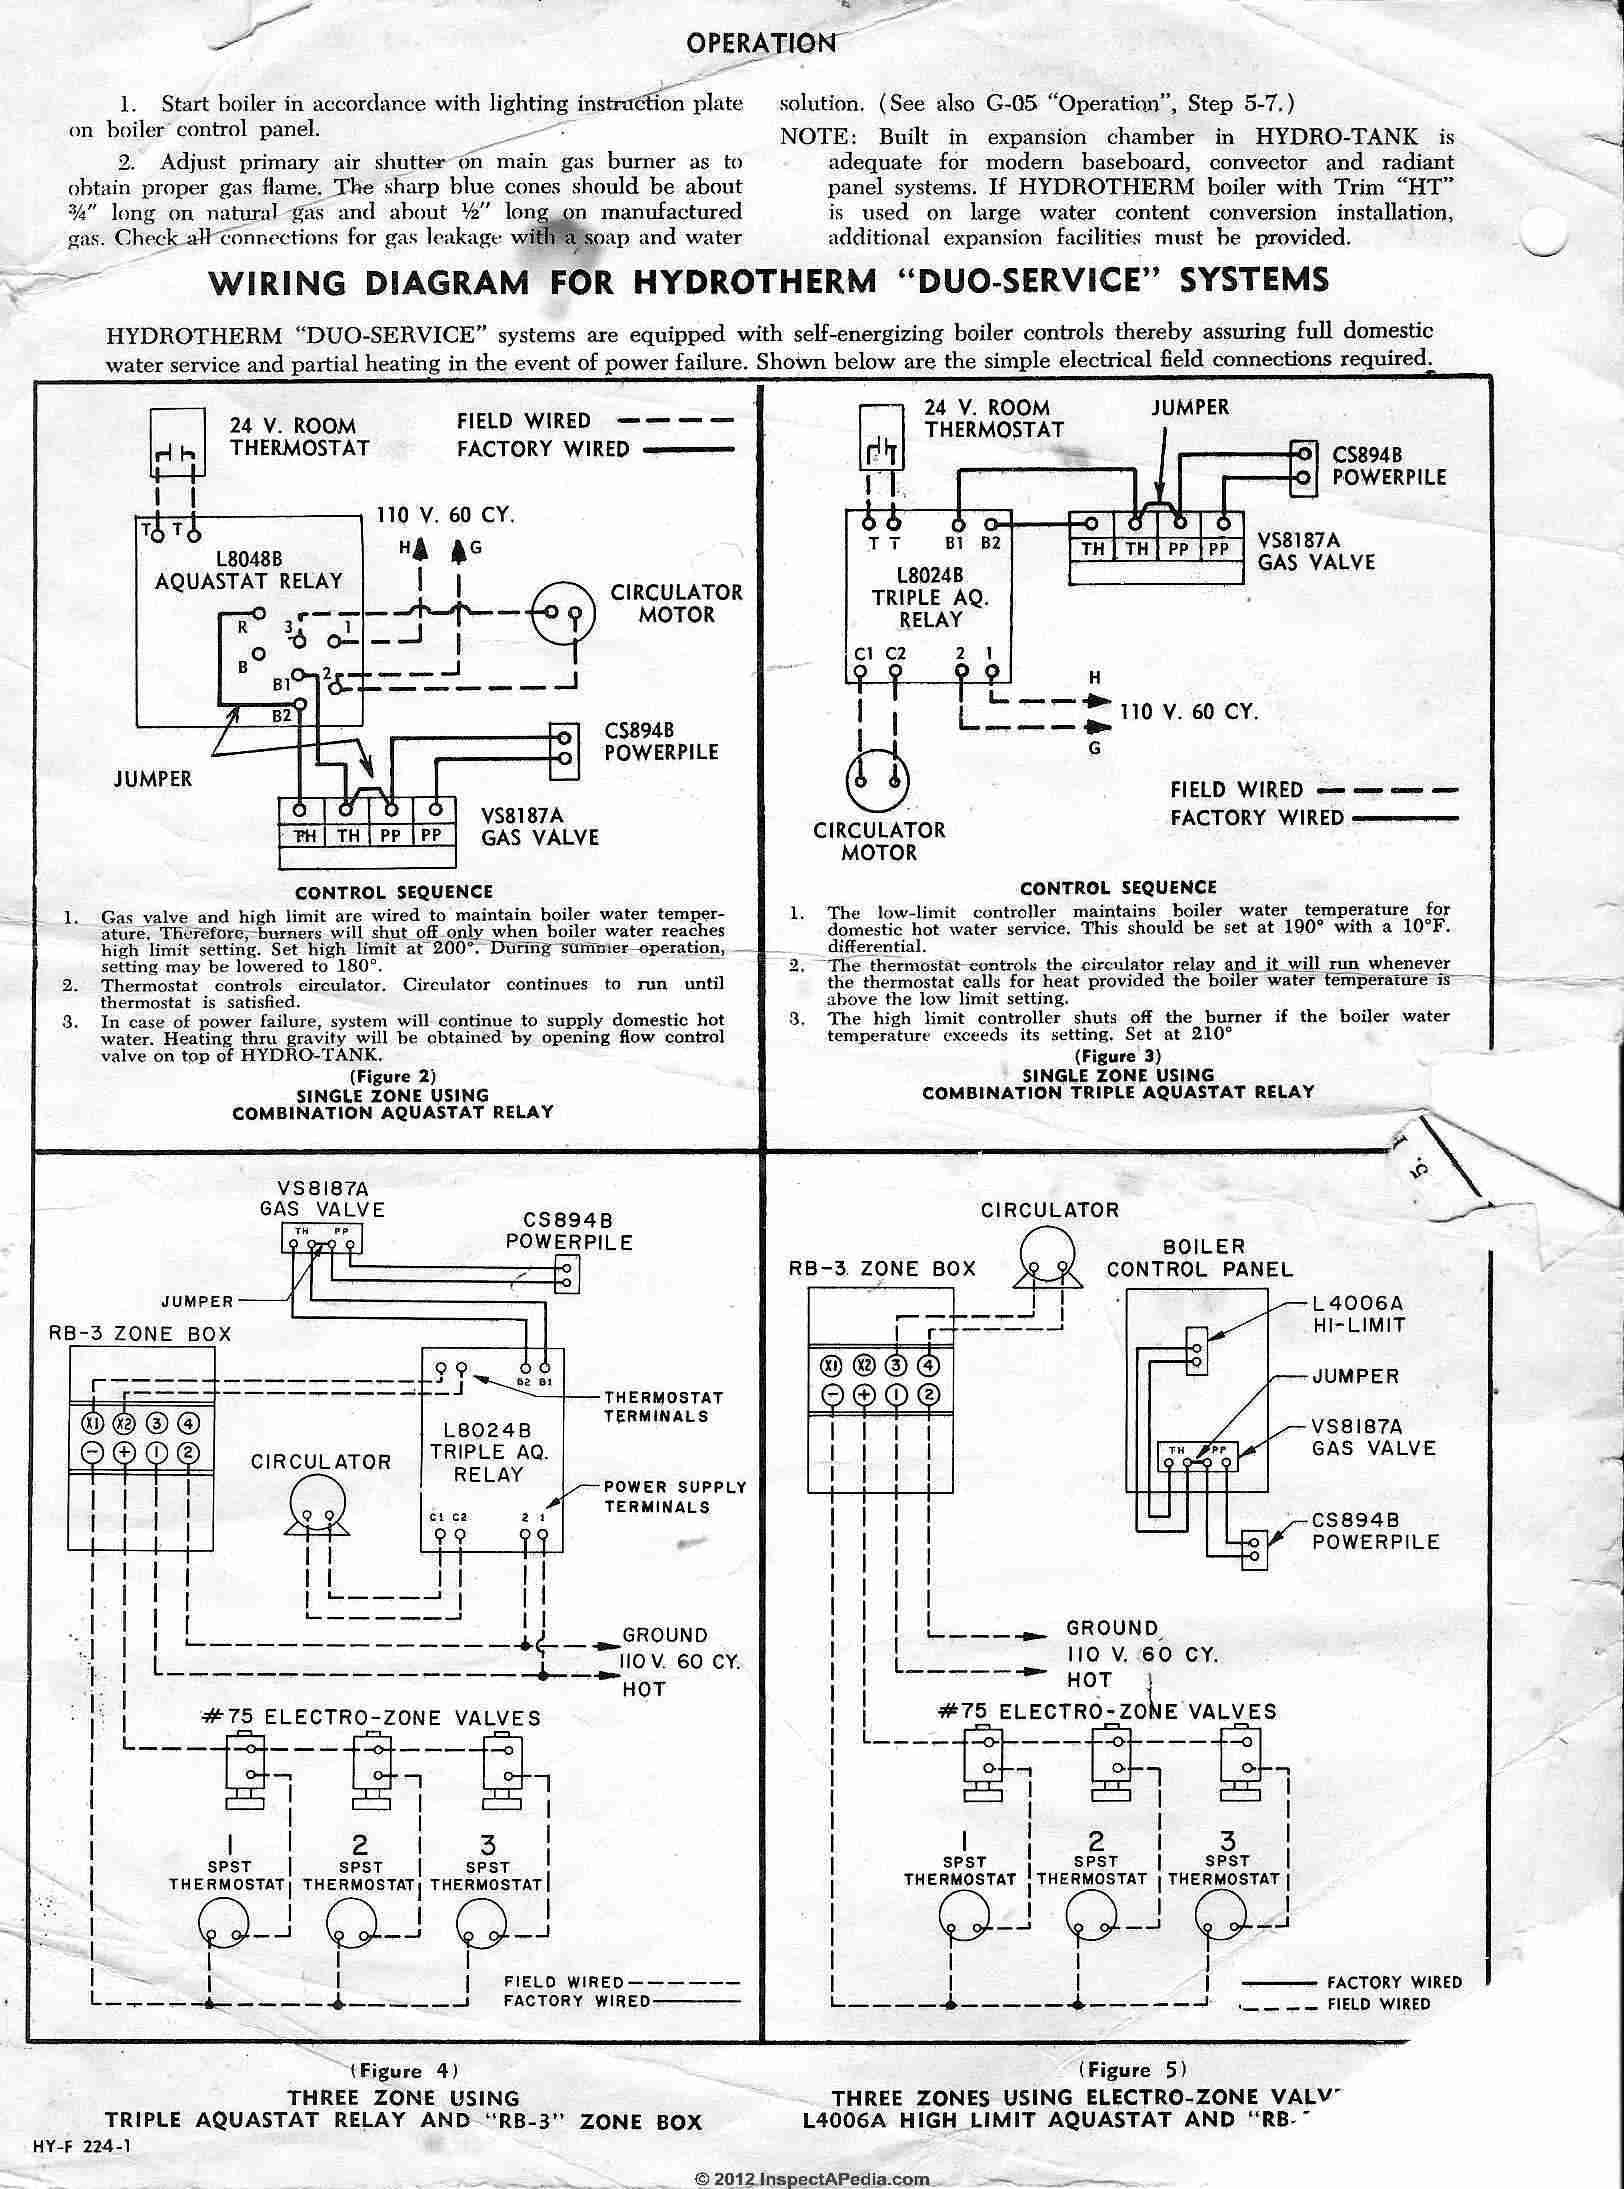 L8024B_Aquastat_0422_DJFcs heating boiler aquastat control diagnosis, troubleshooting, repair imit boiler thermostat wiring diagram at soozxer.org